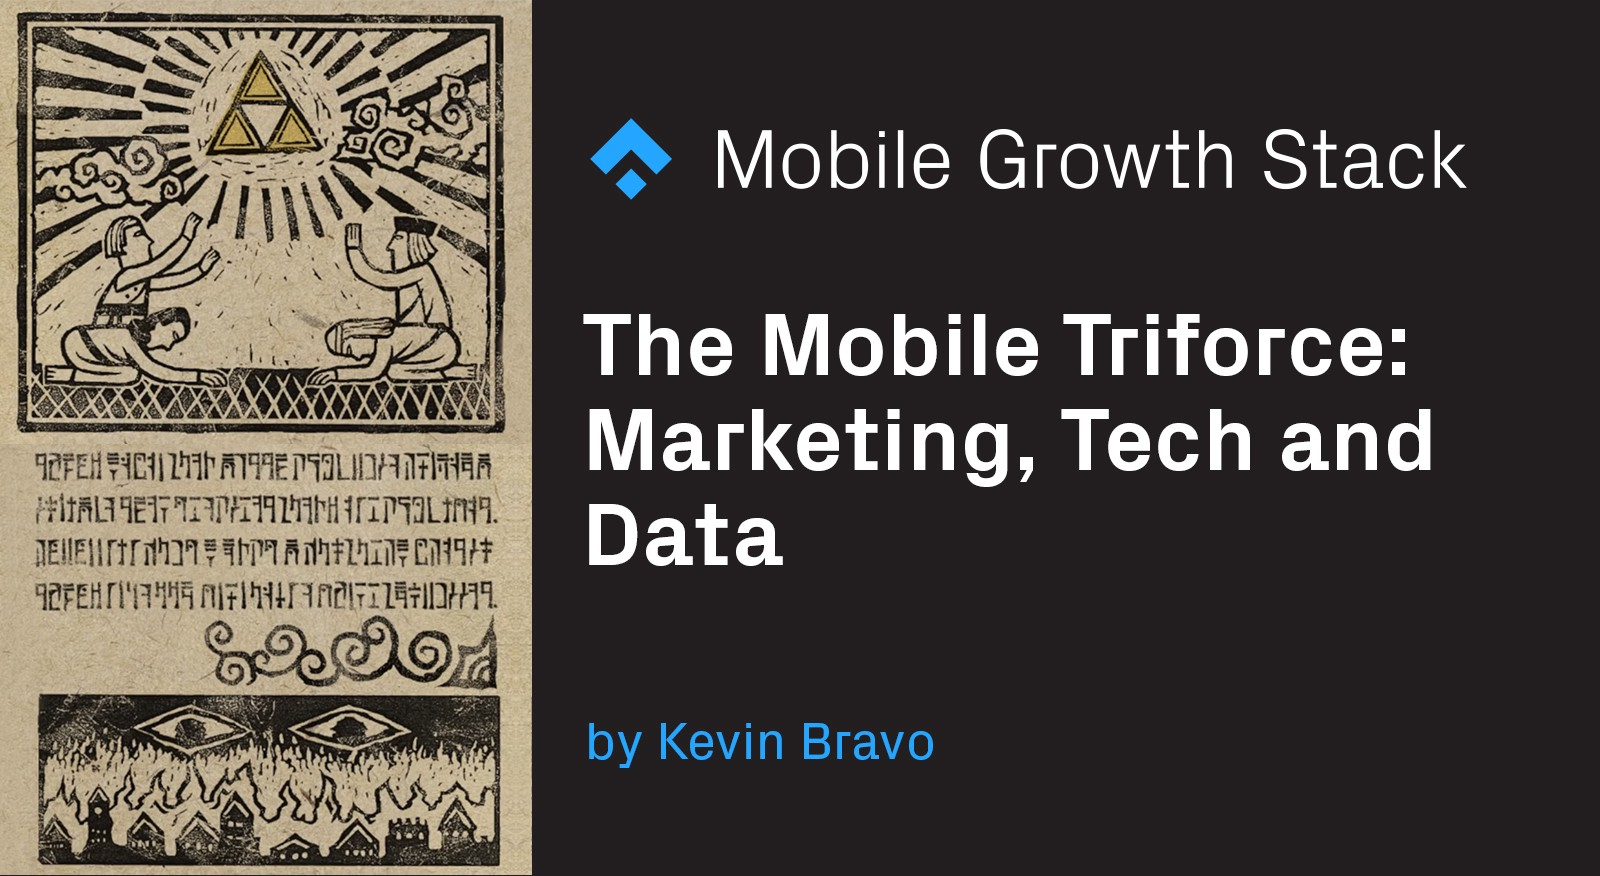 The Mobile Triforce: Marketing, Tech, and Data.